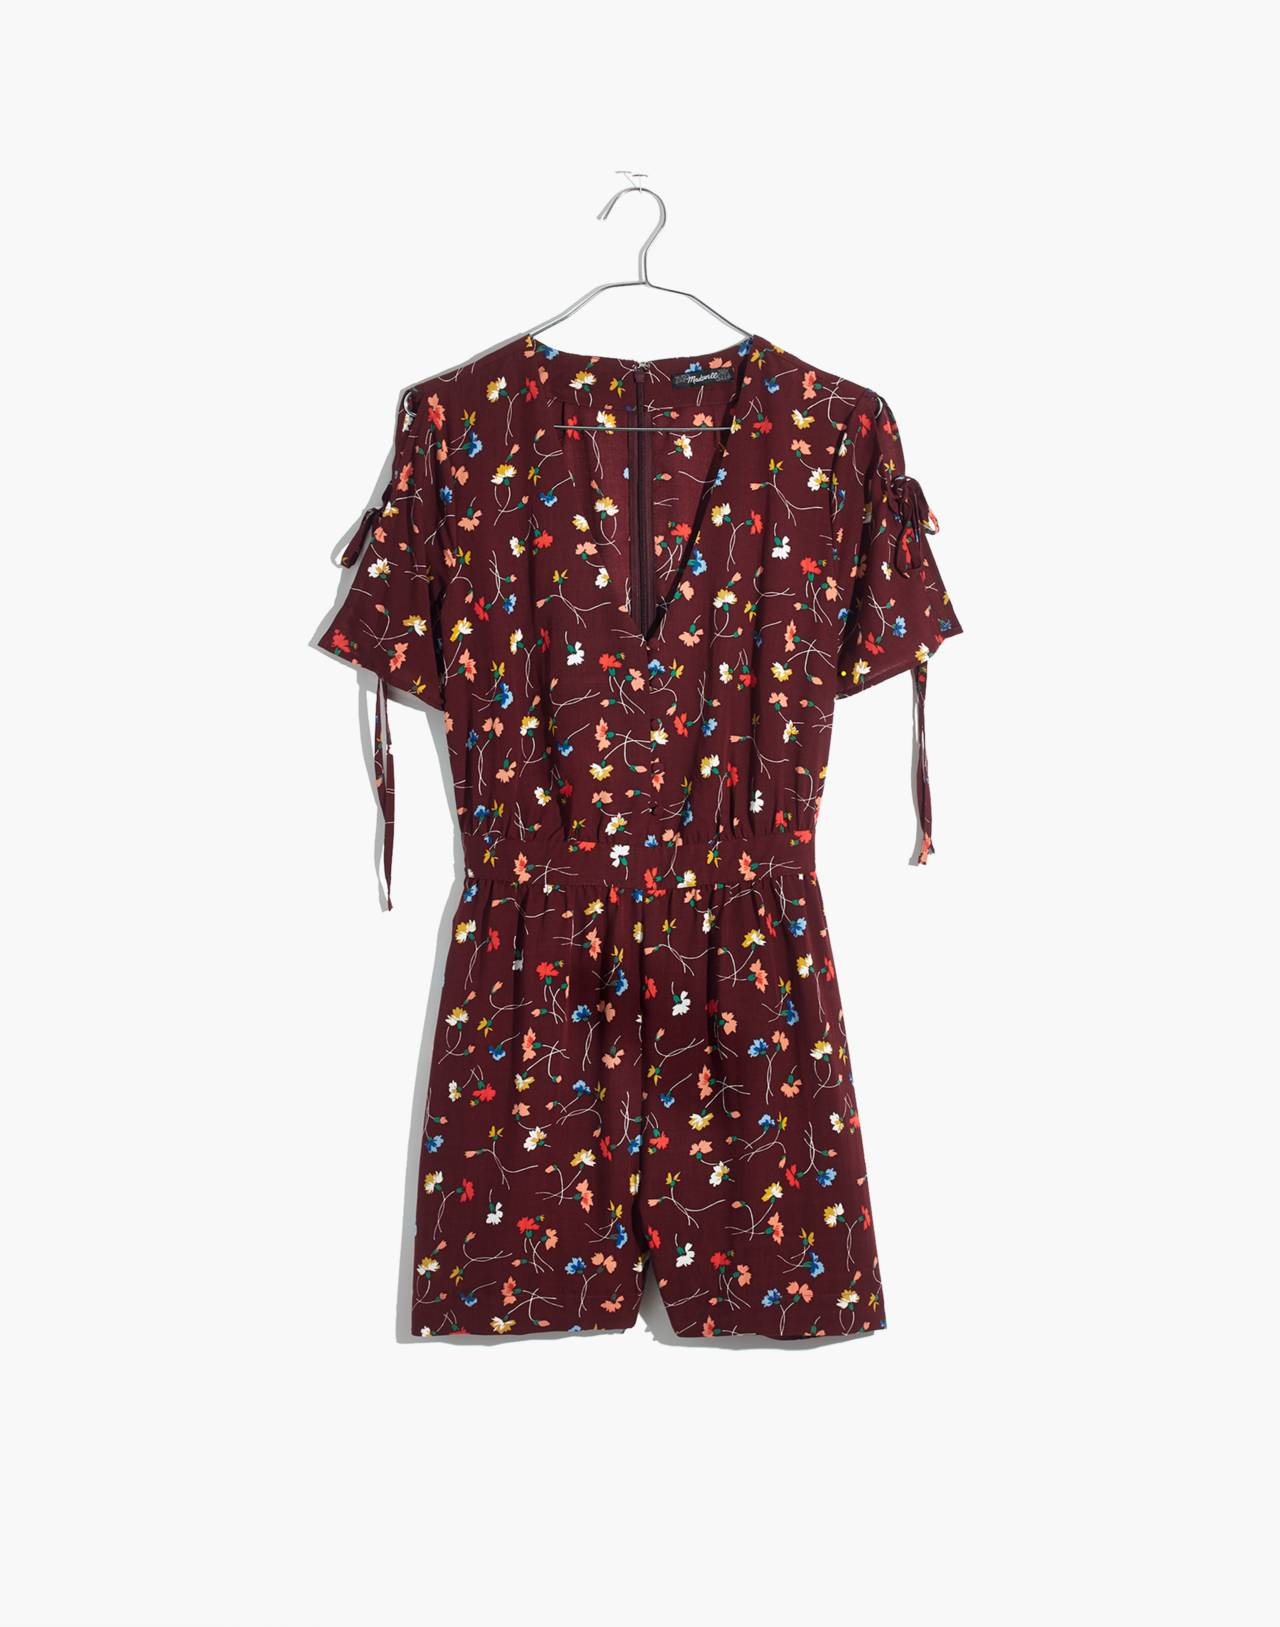 Button-Front Romper in Painted Carnations in allie deep plum image 4